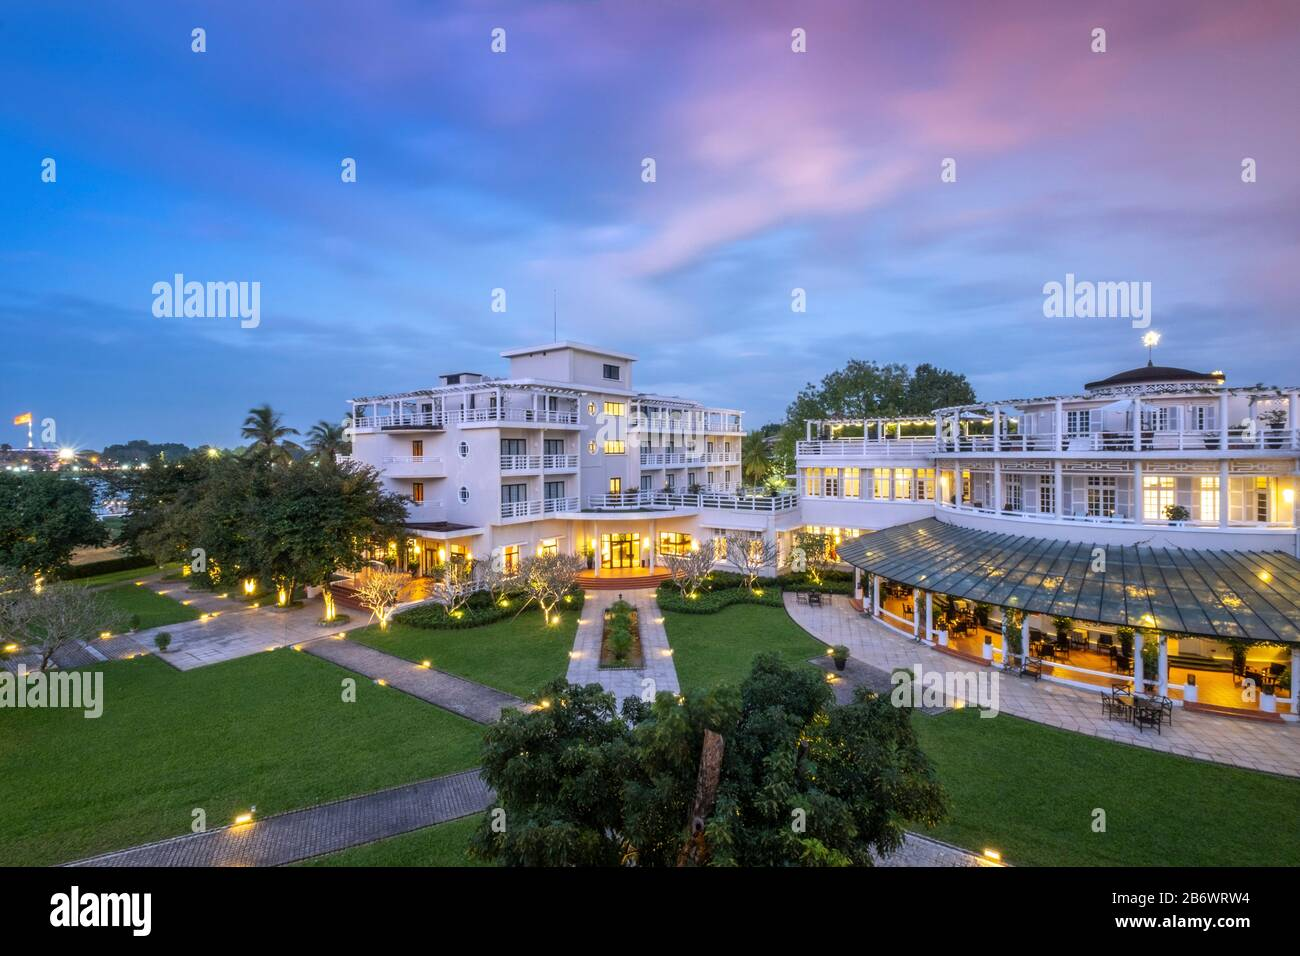 Southeast Asia, Vietnam, The Azerai La Residence hotel in Hue - a boutique hotel in a heritage building in the historical city and world heritage site Stock Photo